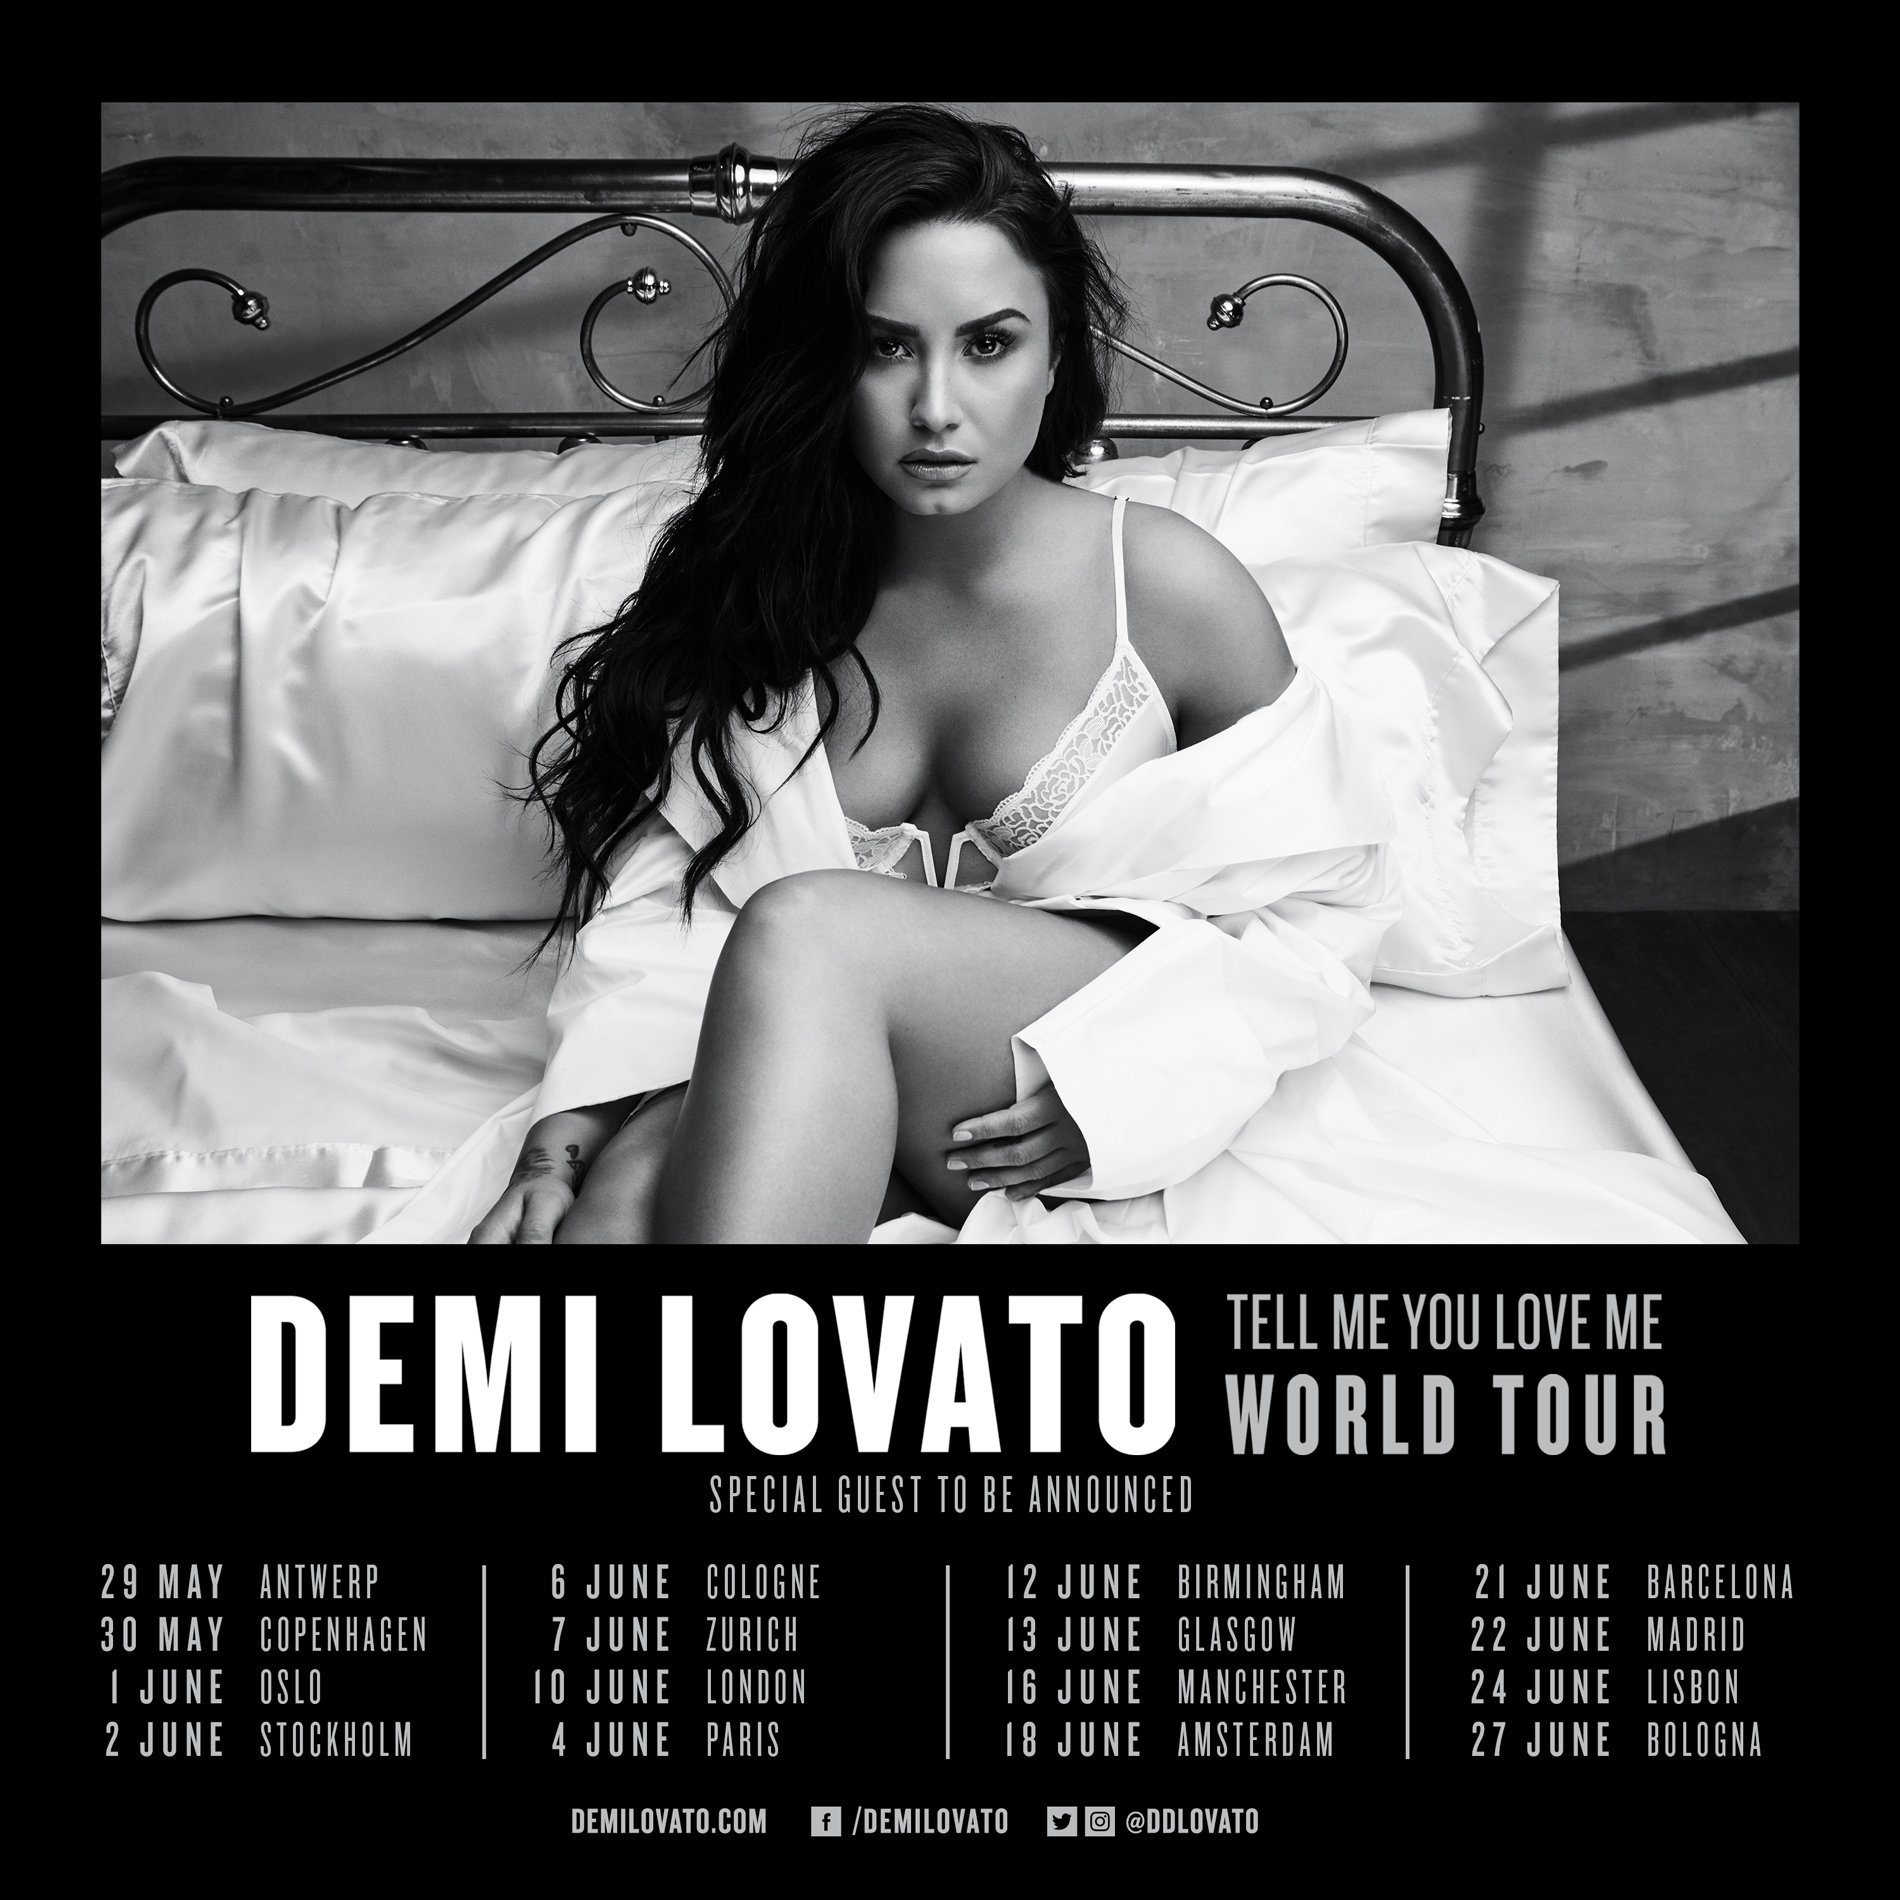 Europe!! Told you I was coming... �� Tickets go on sale this Friday!! #TellMeYouLoveMeTour https://t.co/XiQvqAd6uf https://t.co/K6V09F0dJ4